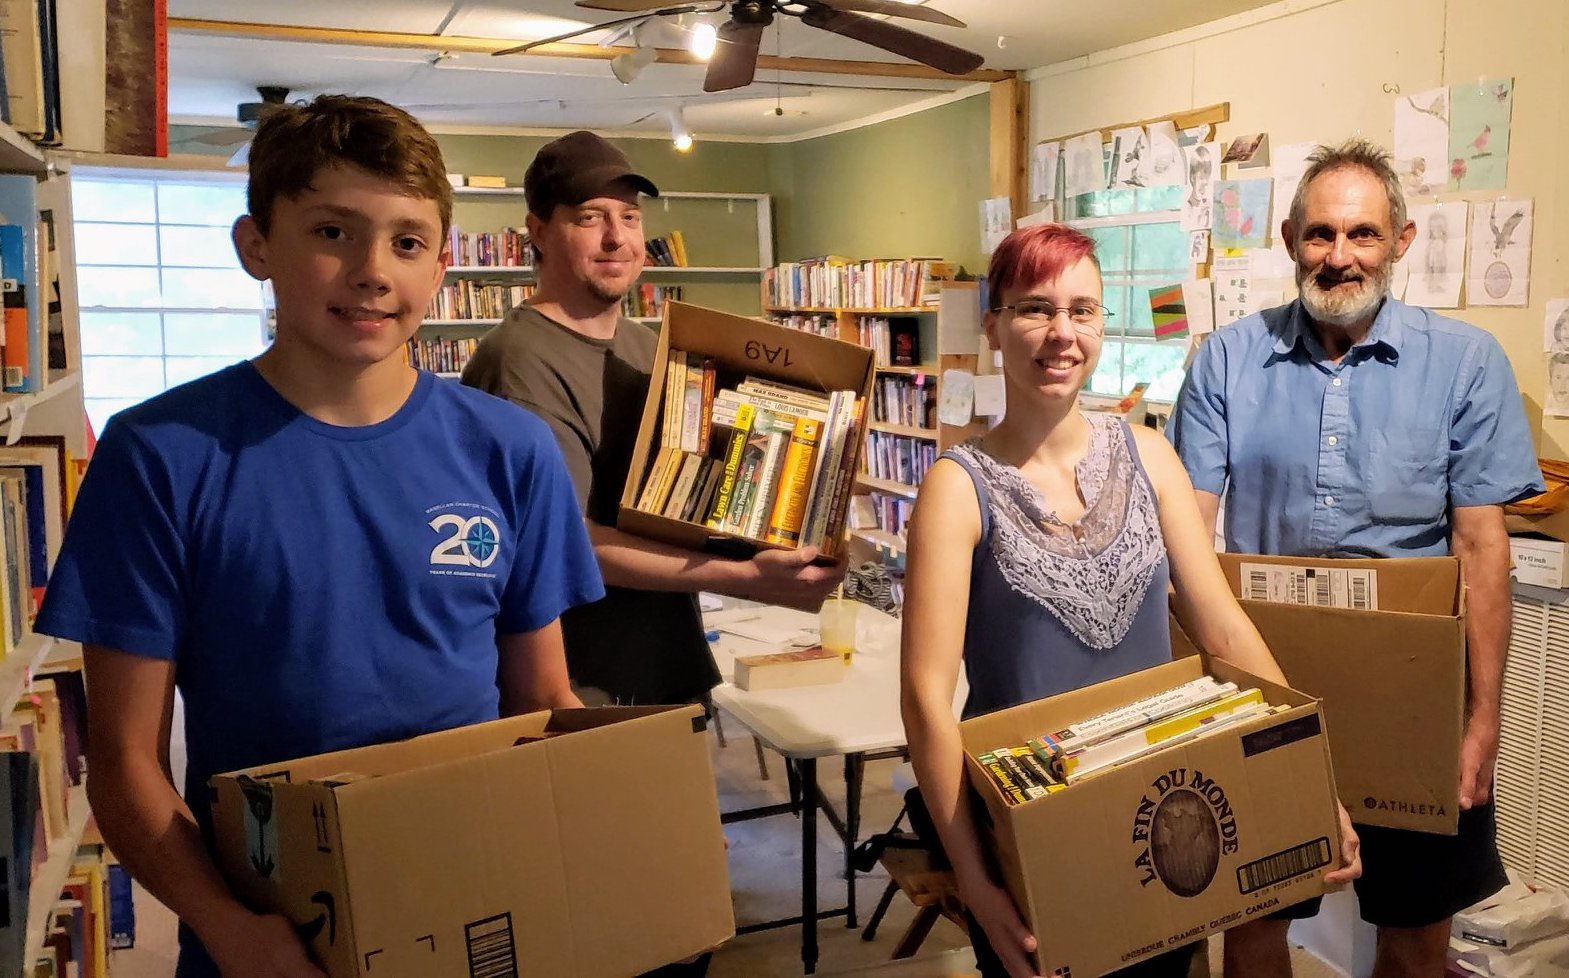 Volunteers showing off boxes of donated books.